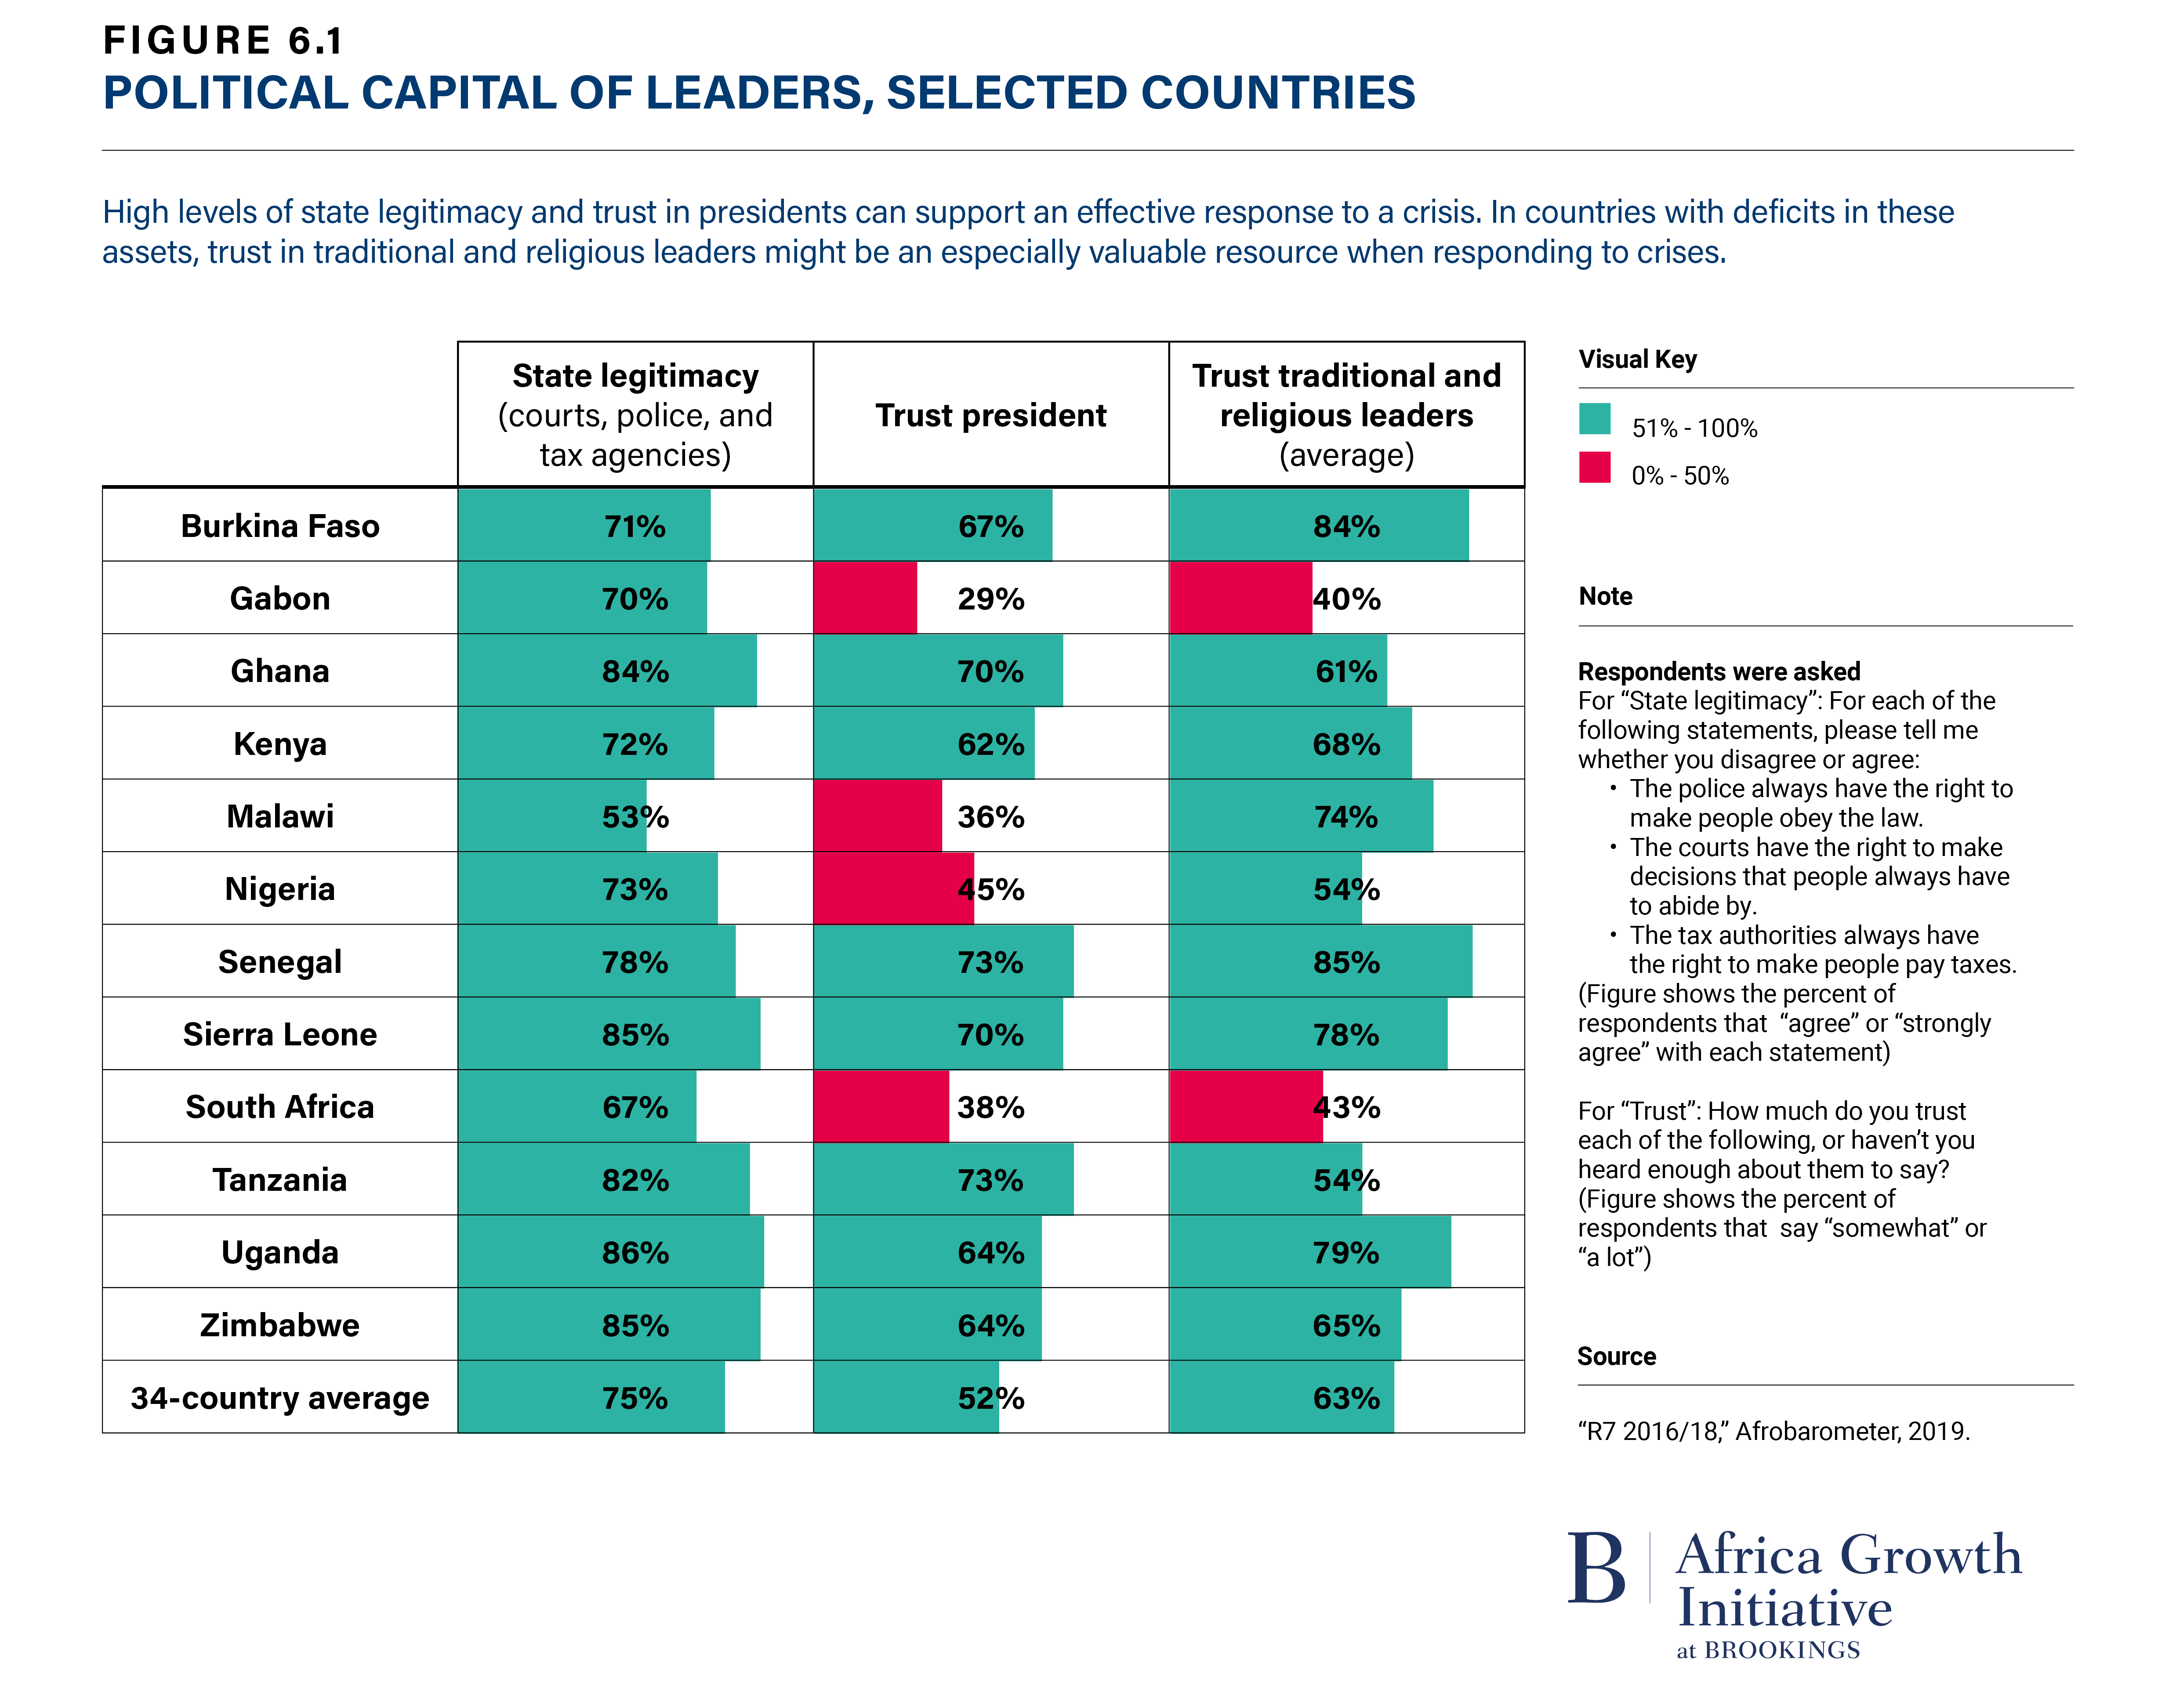 Figure 6.1 Political Capital of Leaders, Selected Countries